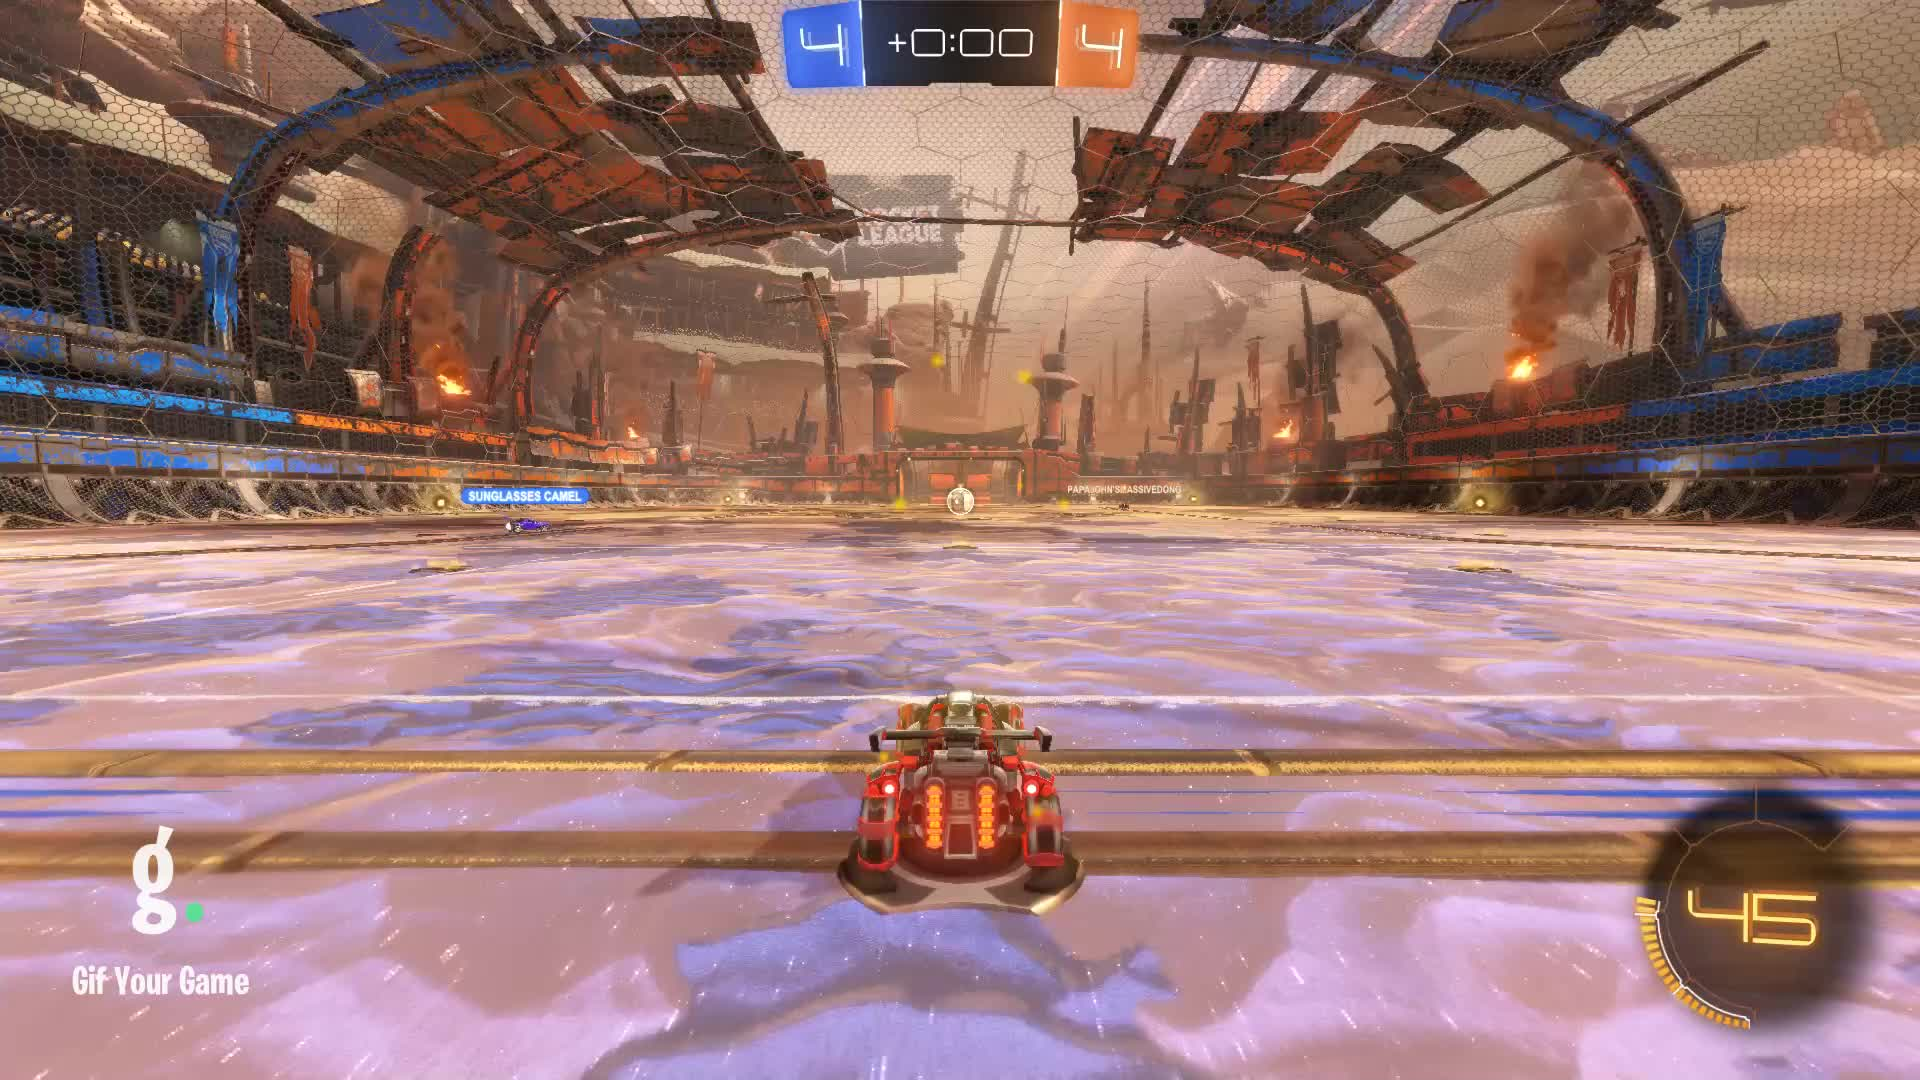 Gif Your Game, GifYourGame, Goal, Rocket League, RocketLeague, venomspire, Goal 9: venomspire GIFs